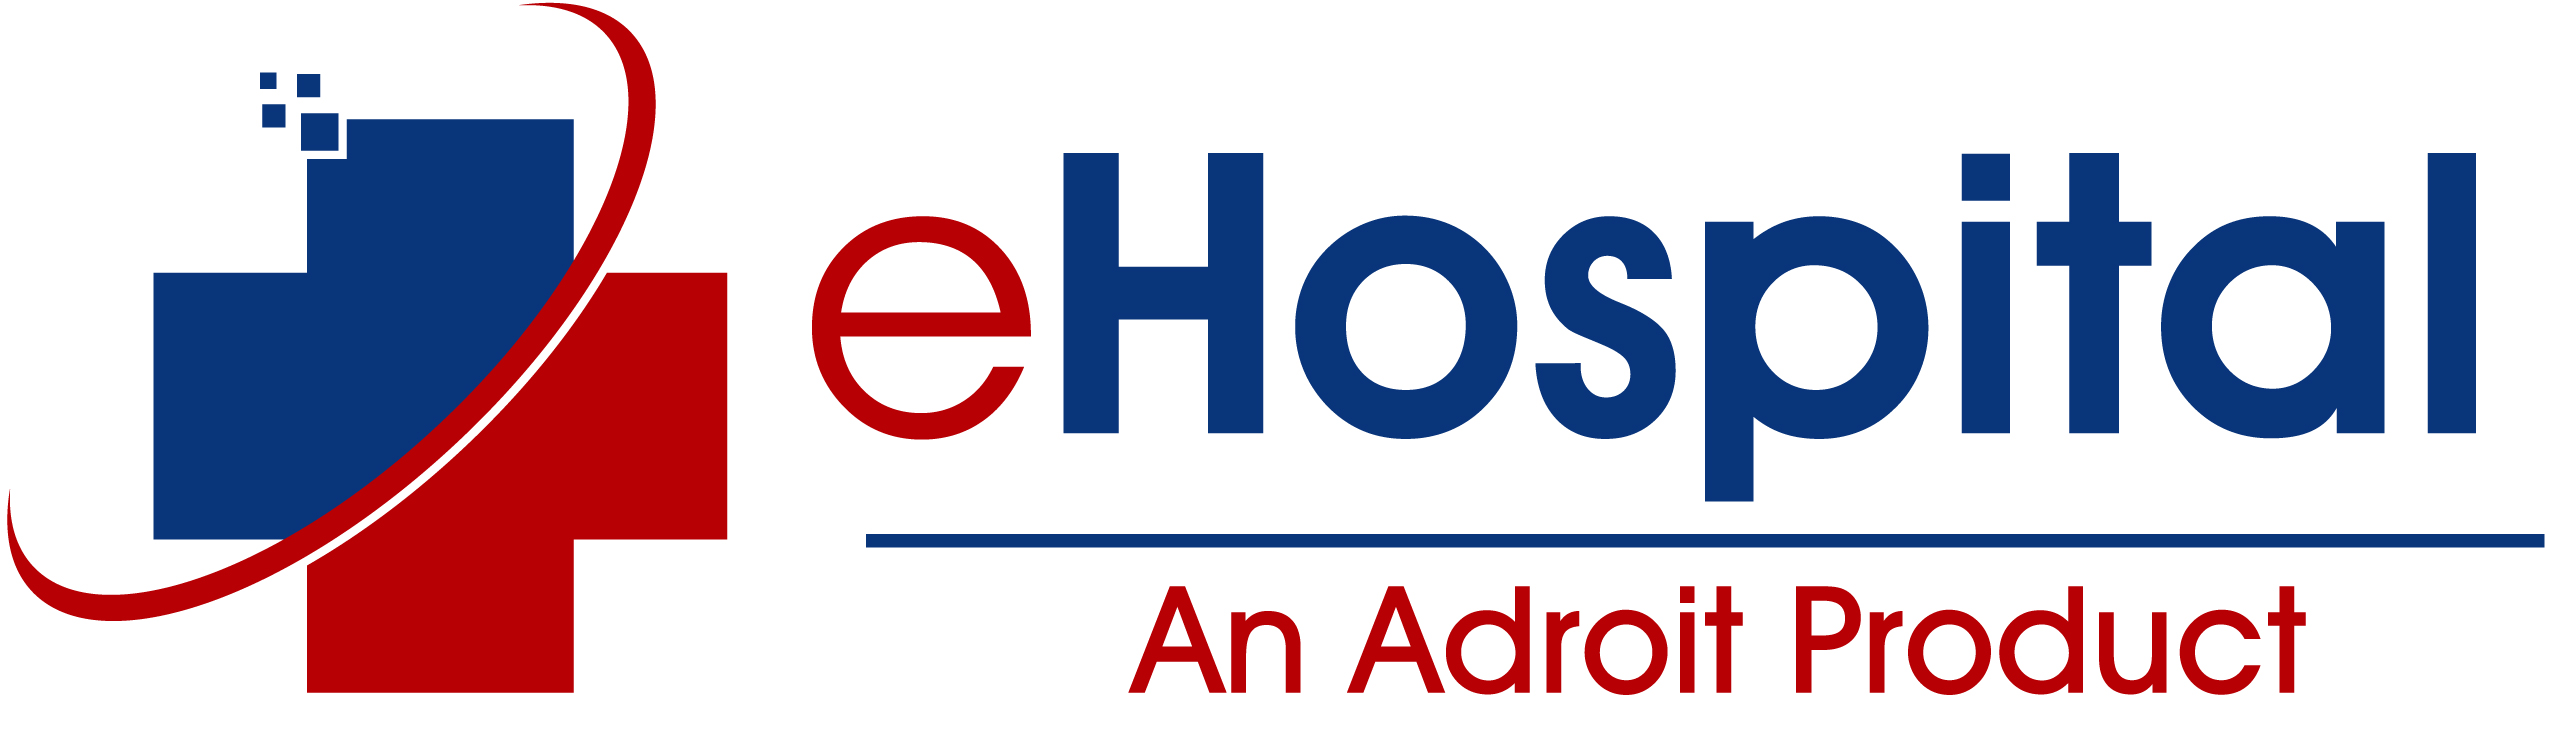 Press Release Adroit Infosystems Expands Ehospital And